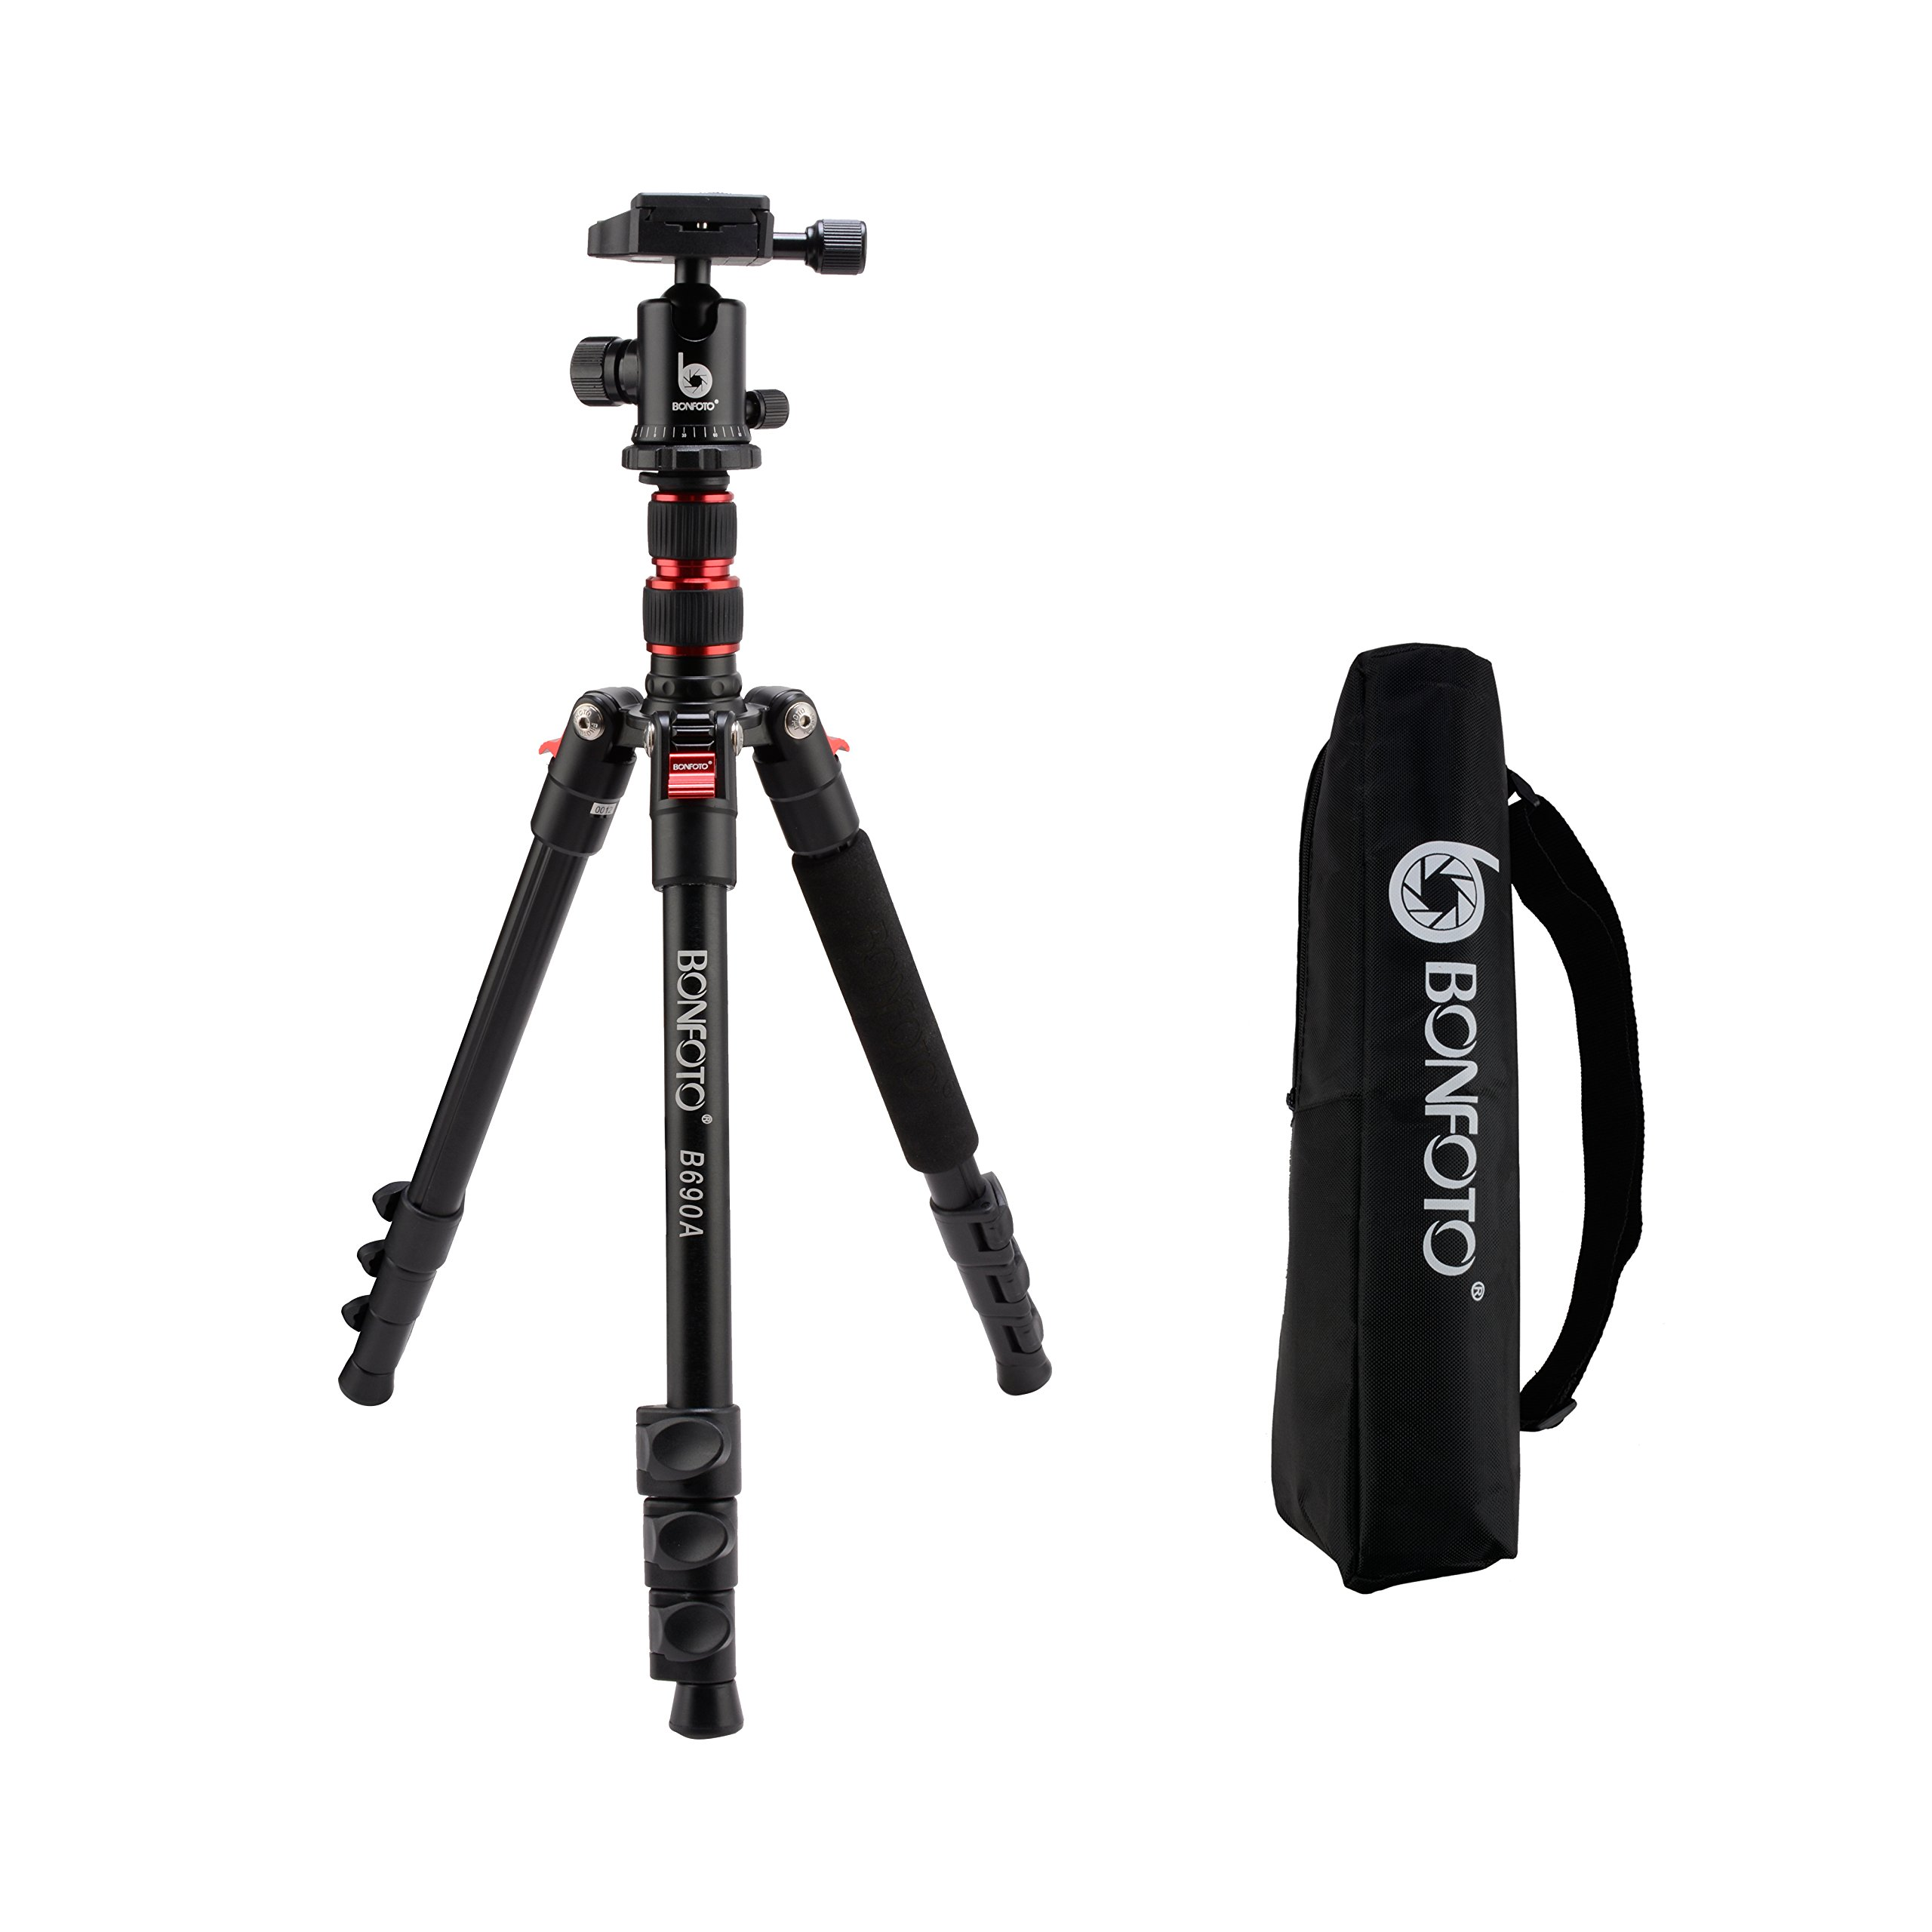 BONFOTO B690A Lightweight Aluminum Alloy Camera Travel Portable Tripod with 360 Degree Ball Head,1/4'' Quick Release Plate and Carry Bag for Canon Nikon Sony DSLR